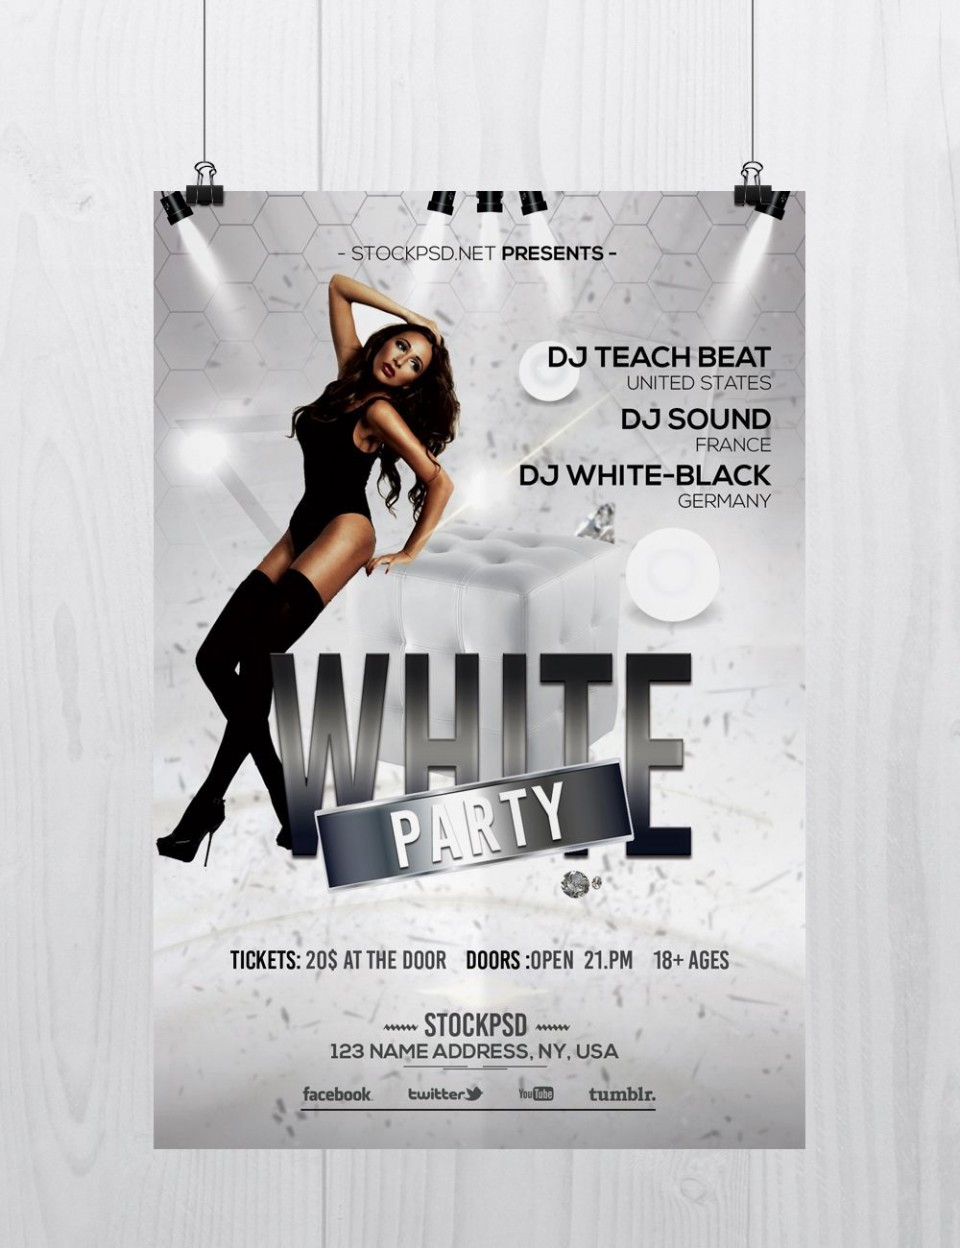 003 Unforgettable Free Party Flyer Template For Photoshop Photo  Pool Psd Download960